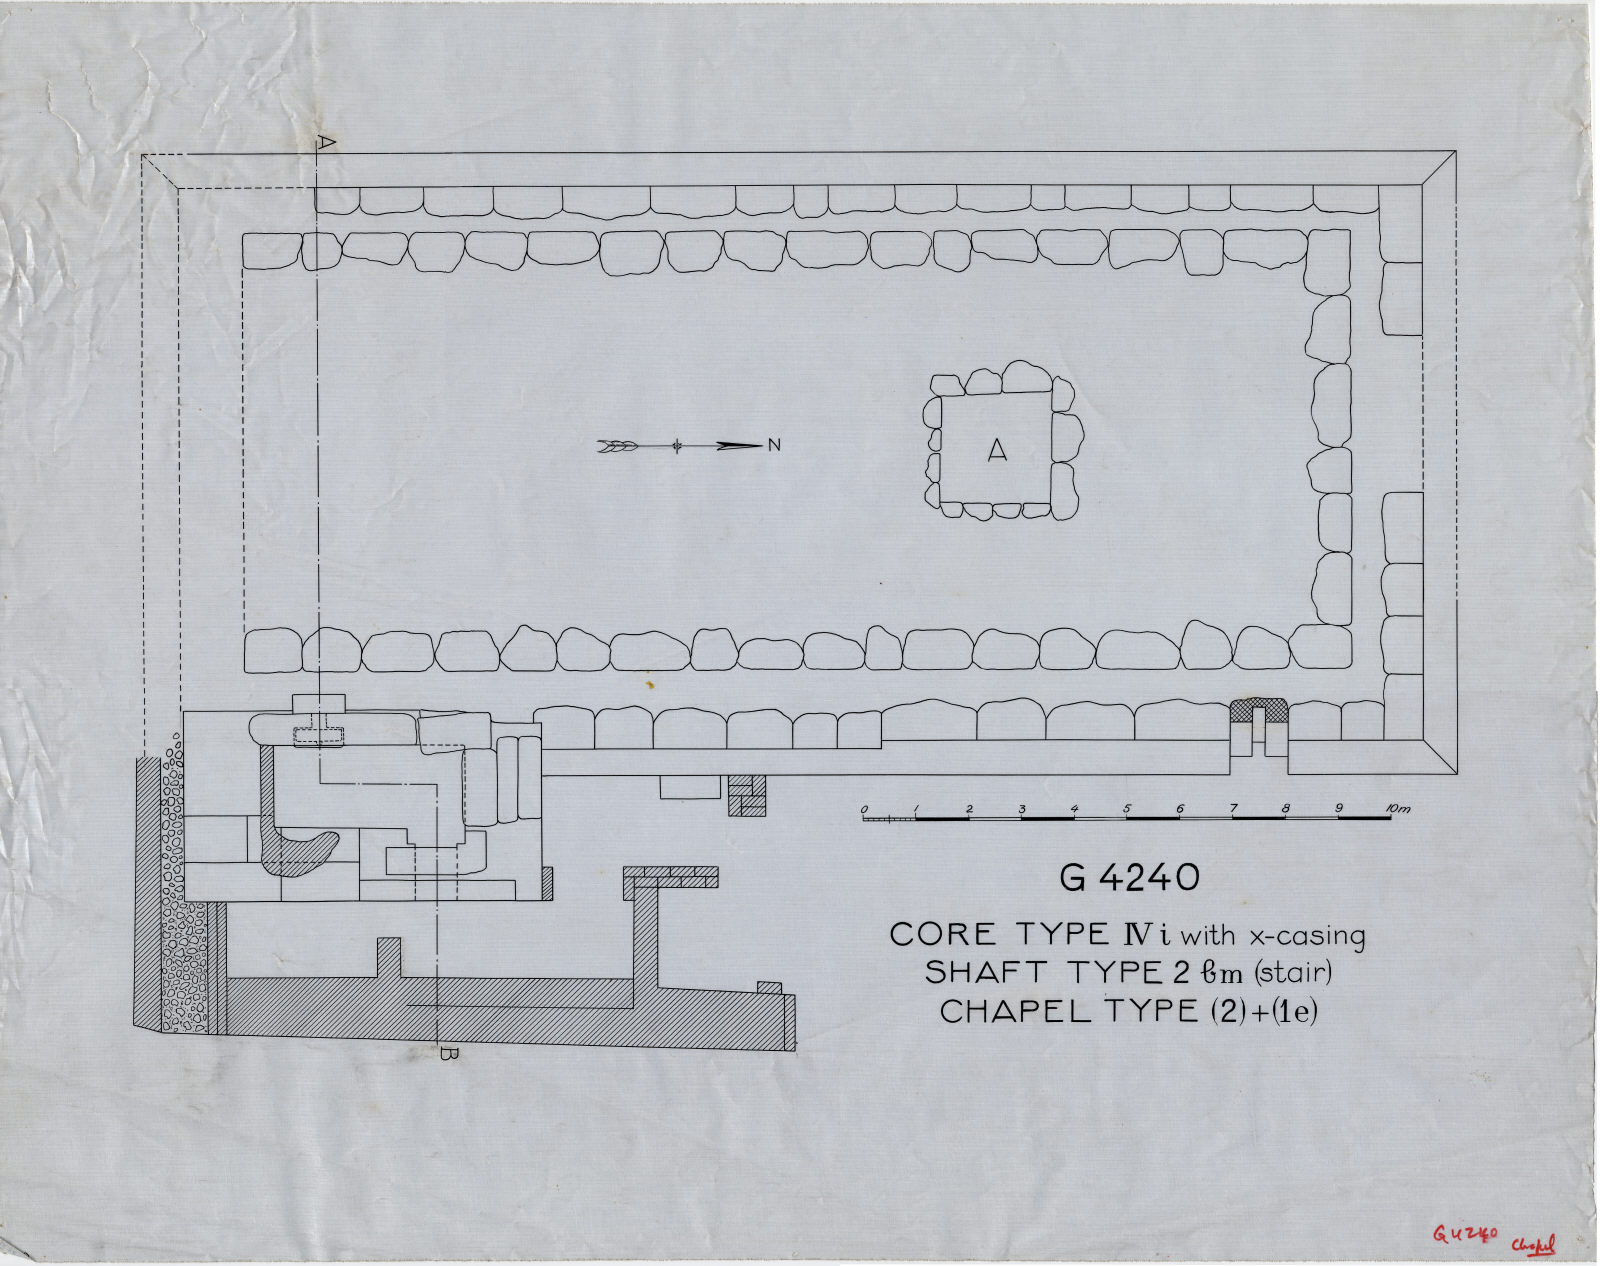 Maps and plans: G 4240, Plan